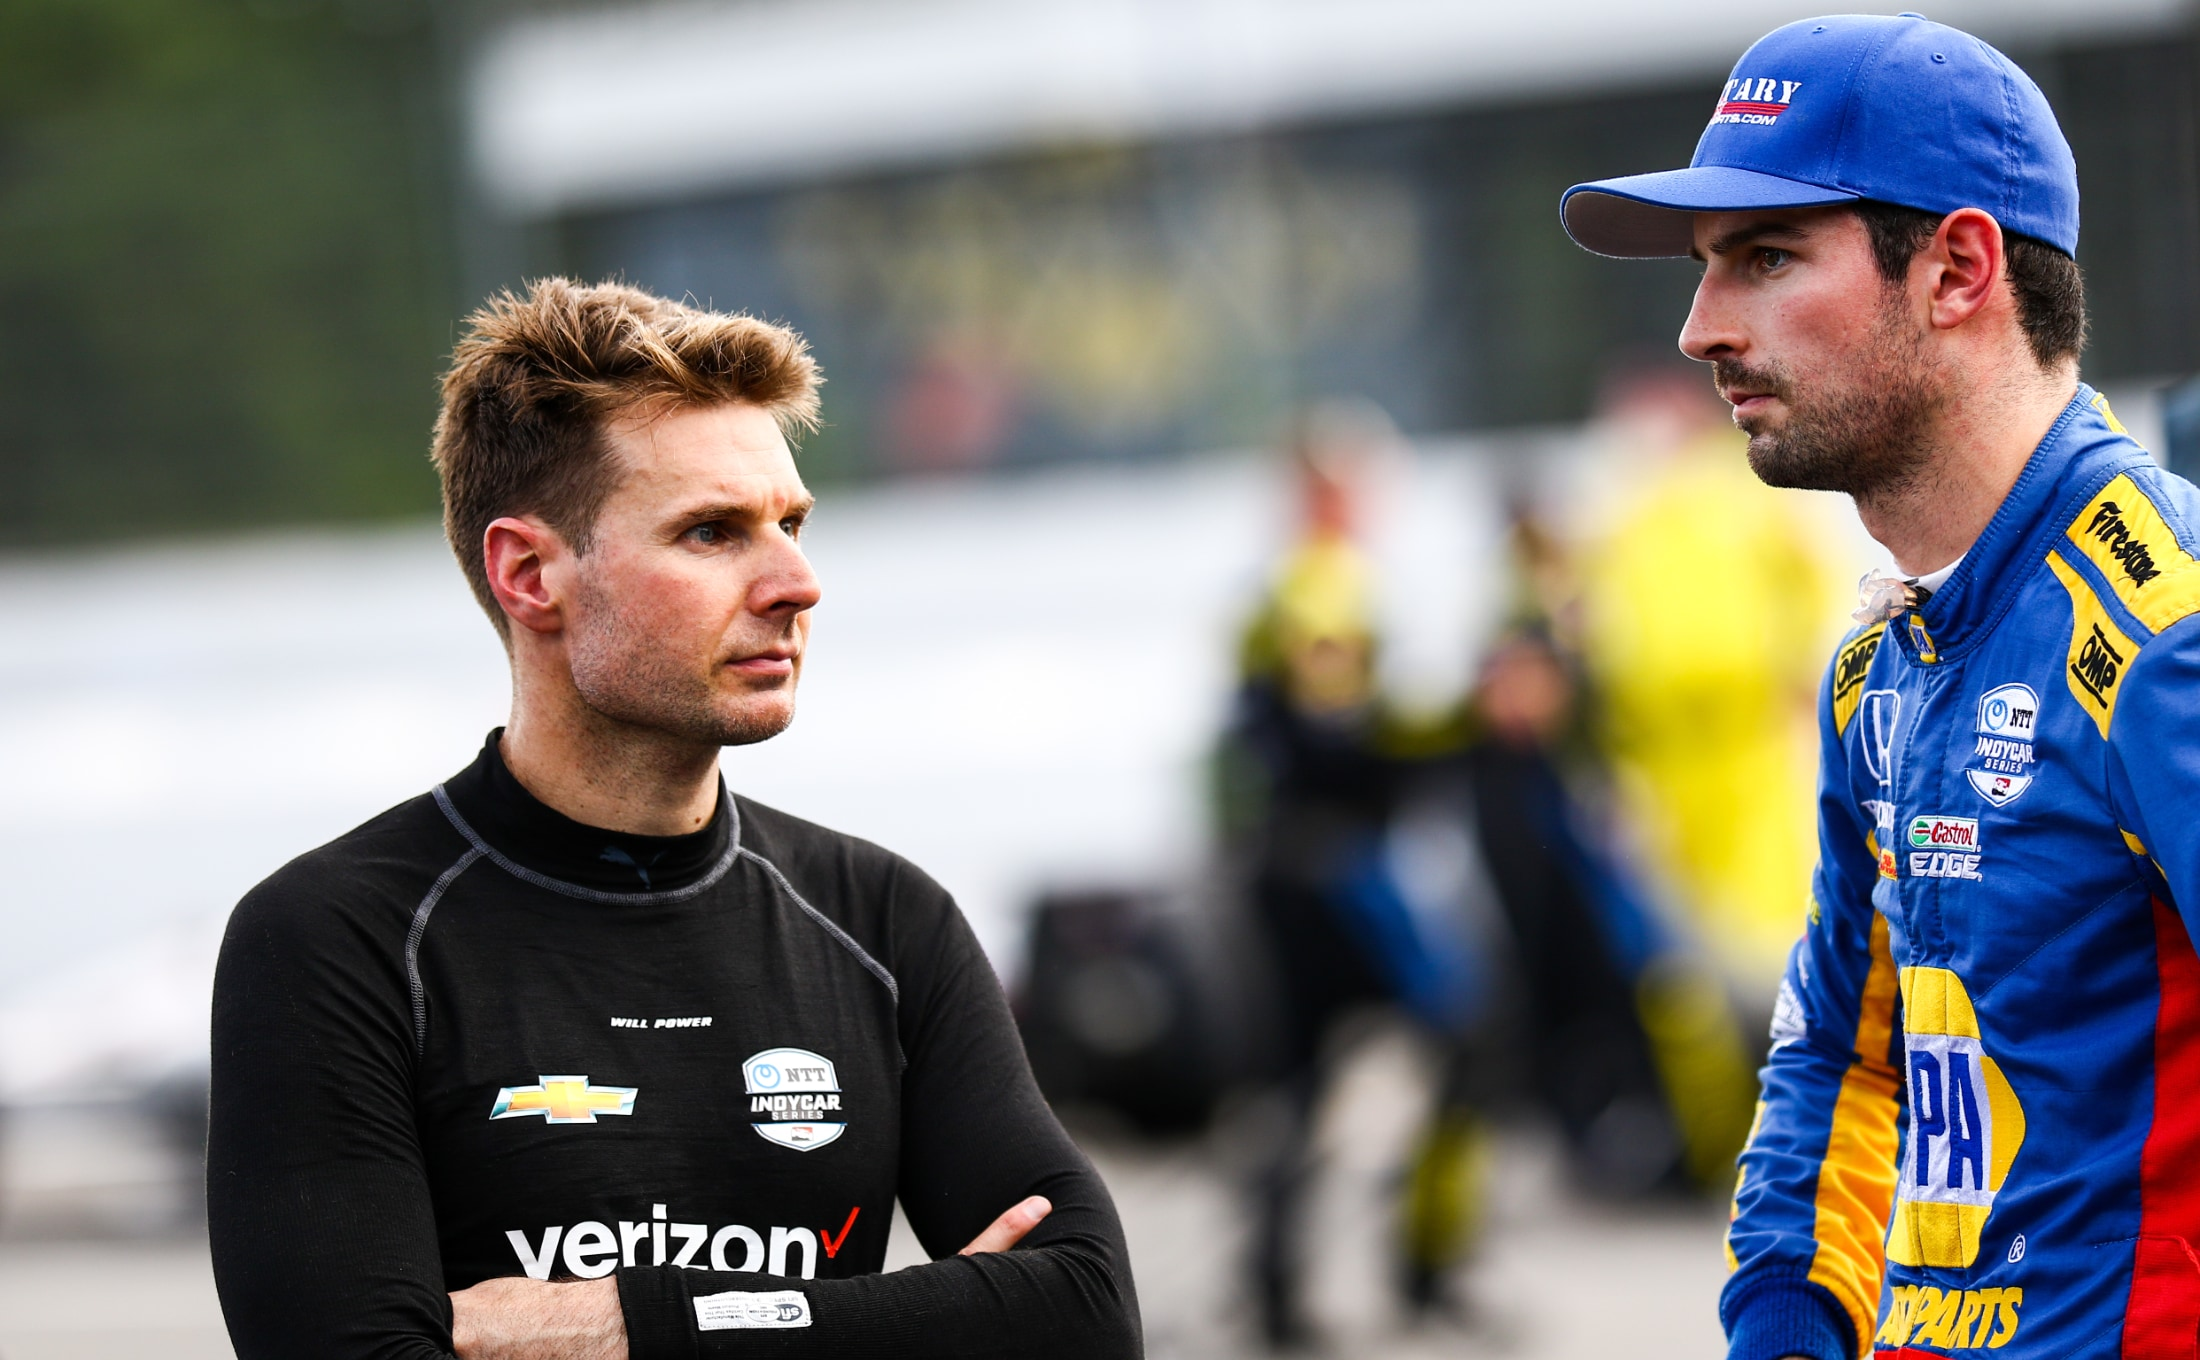 Will Power with Alexander Rossi before 2019 IndyCar race at Pocono